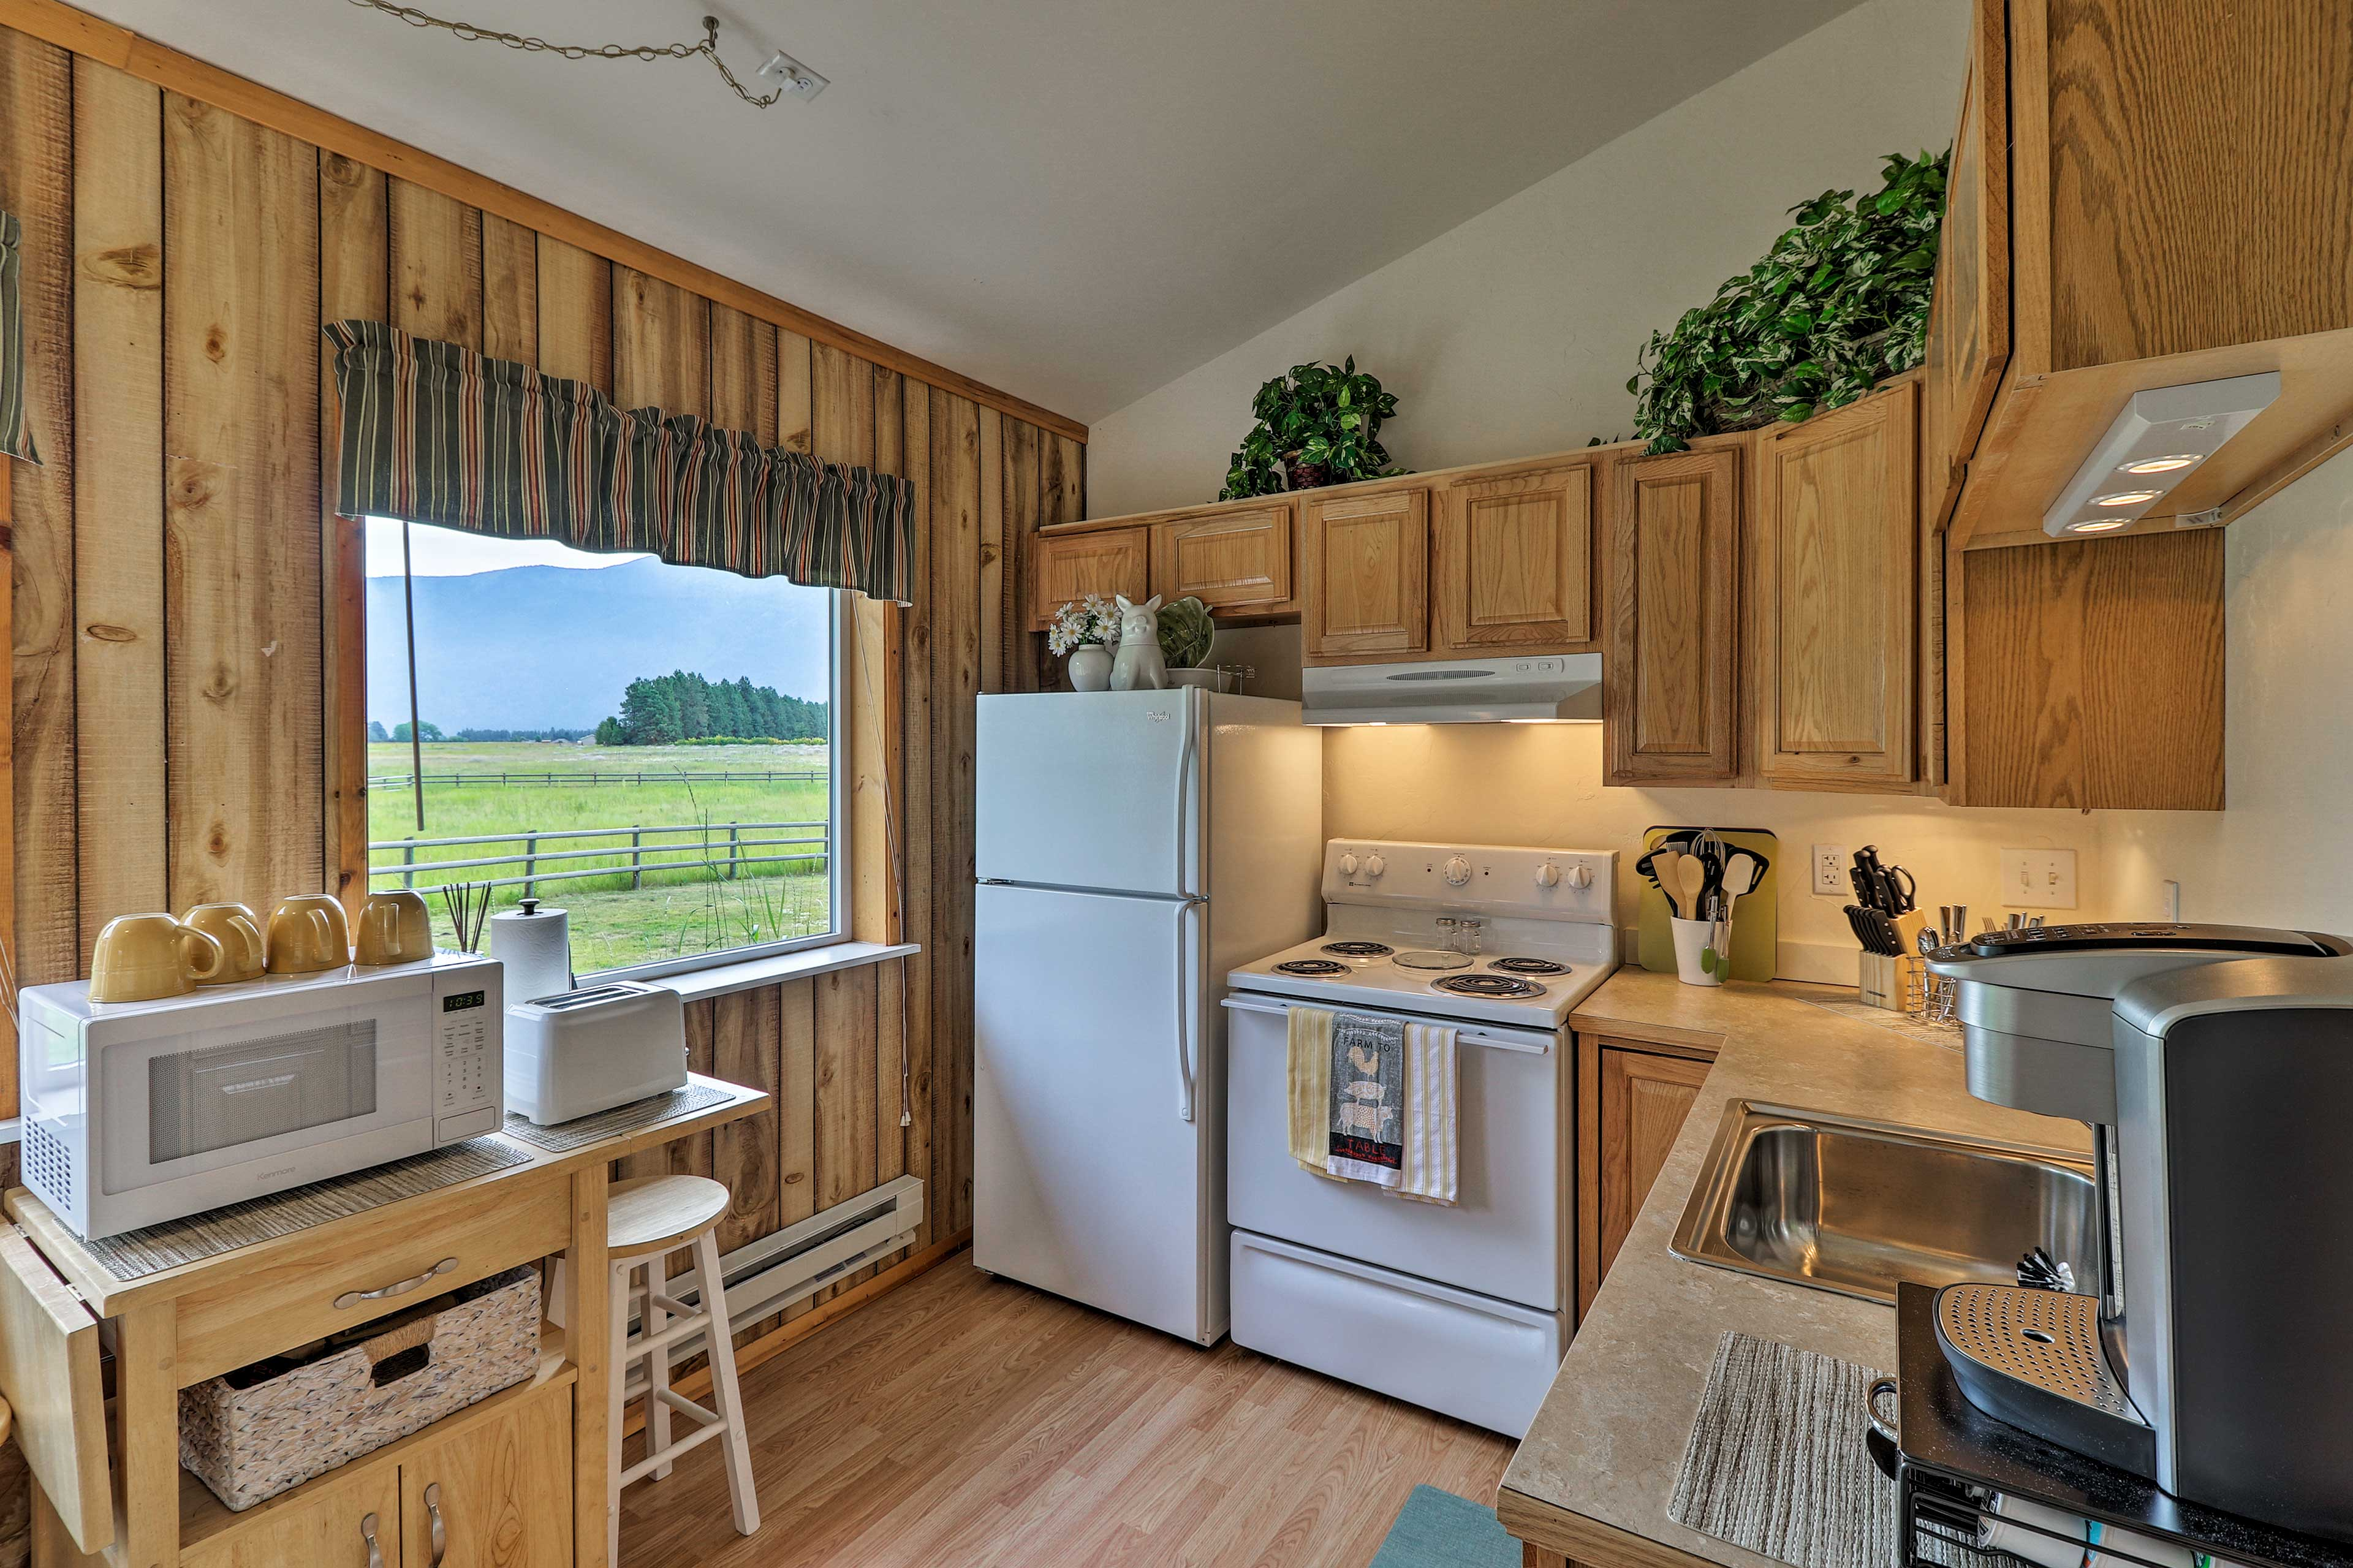 The kitchen is well-equipped so you can easily whip up meals and treats!